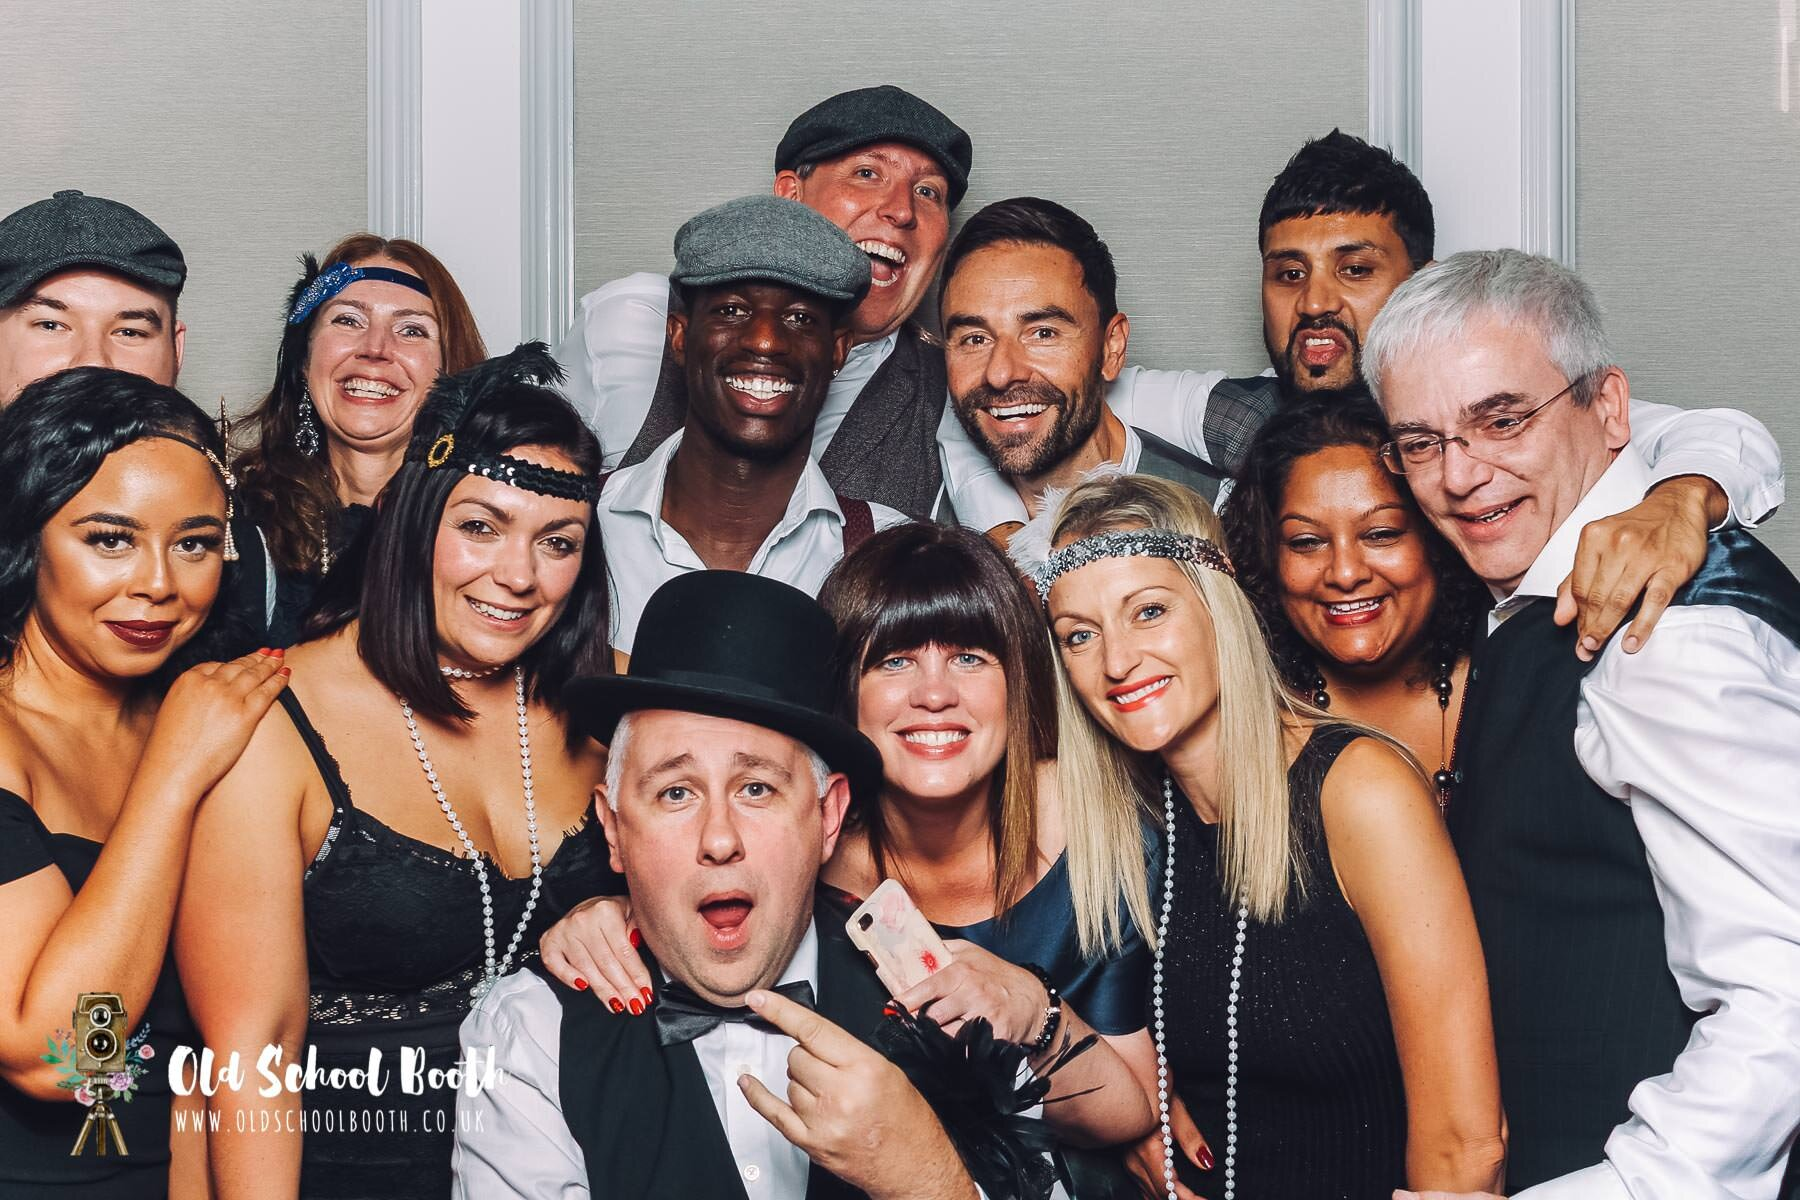 west midlands photo booth